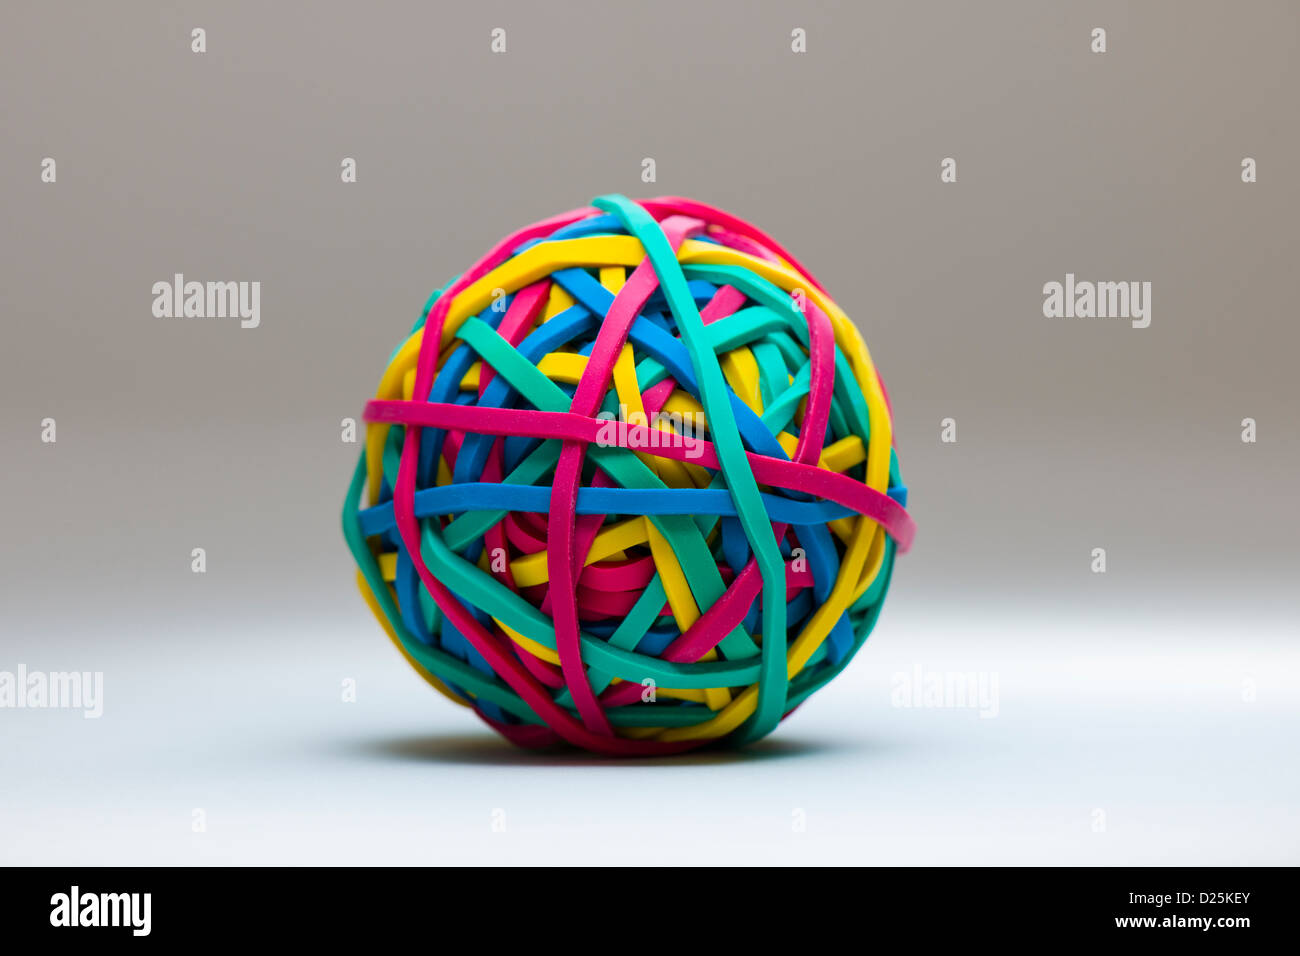 Colourful rubber band ball - Stock Image